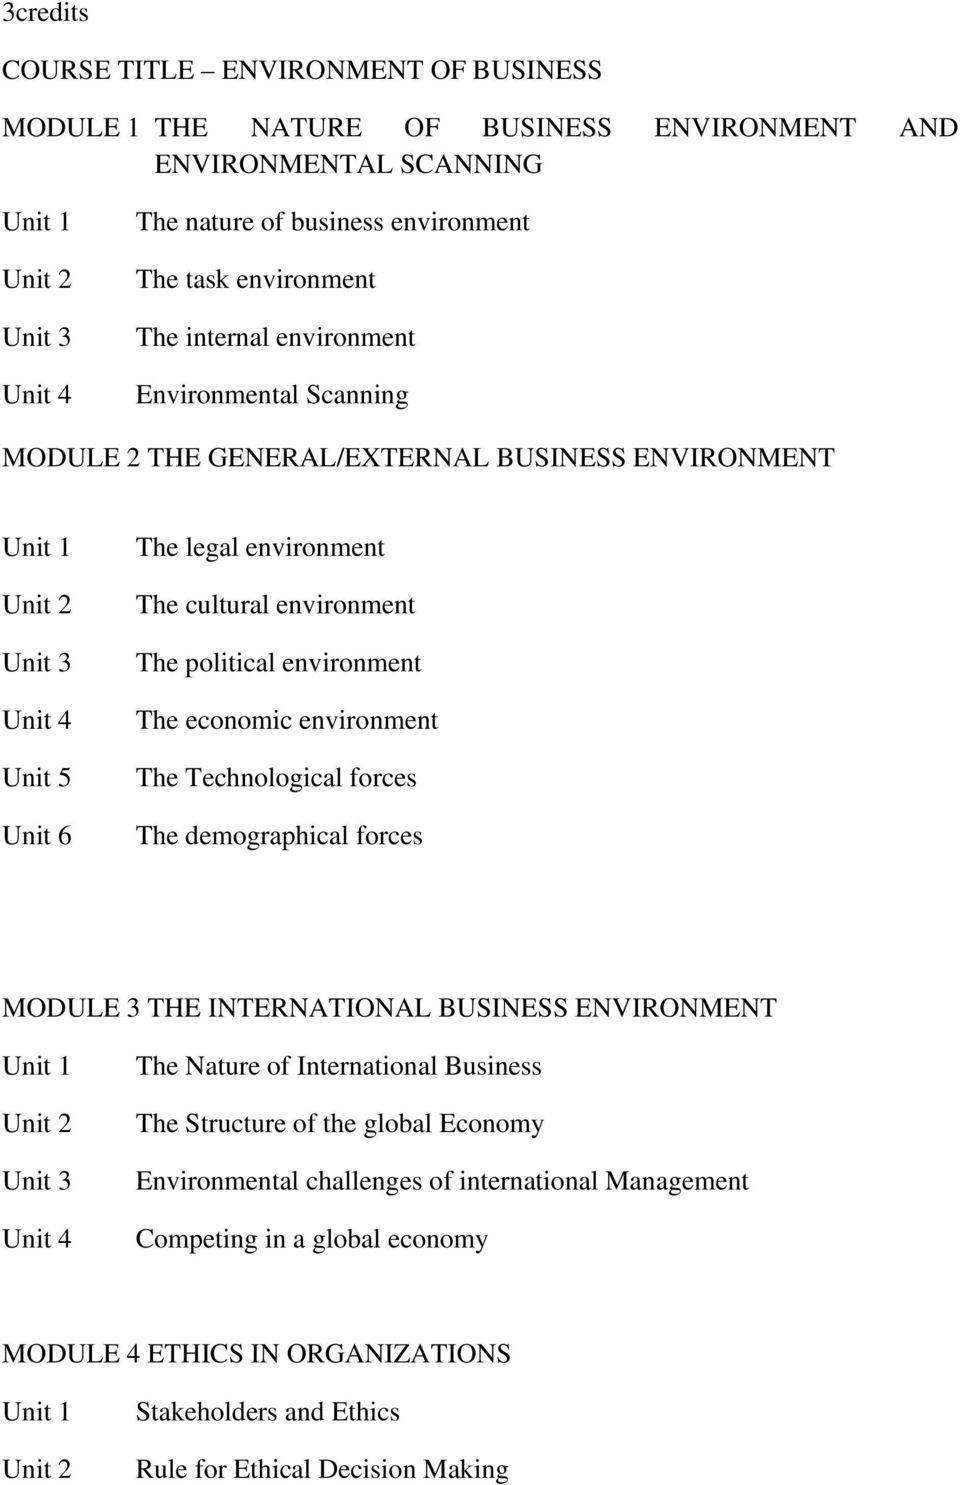 national open university of ia school of management sciences the political environment the economic environment the technological forces the demographical forces module 3 the international